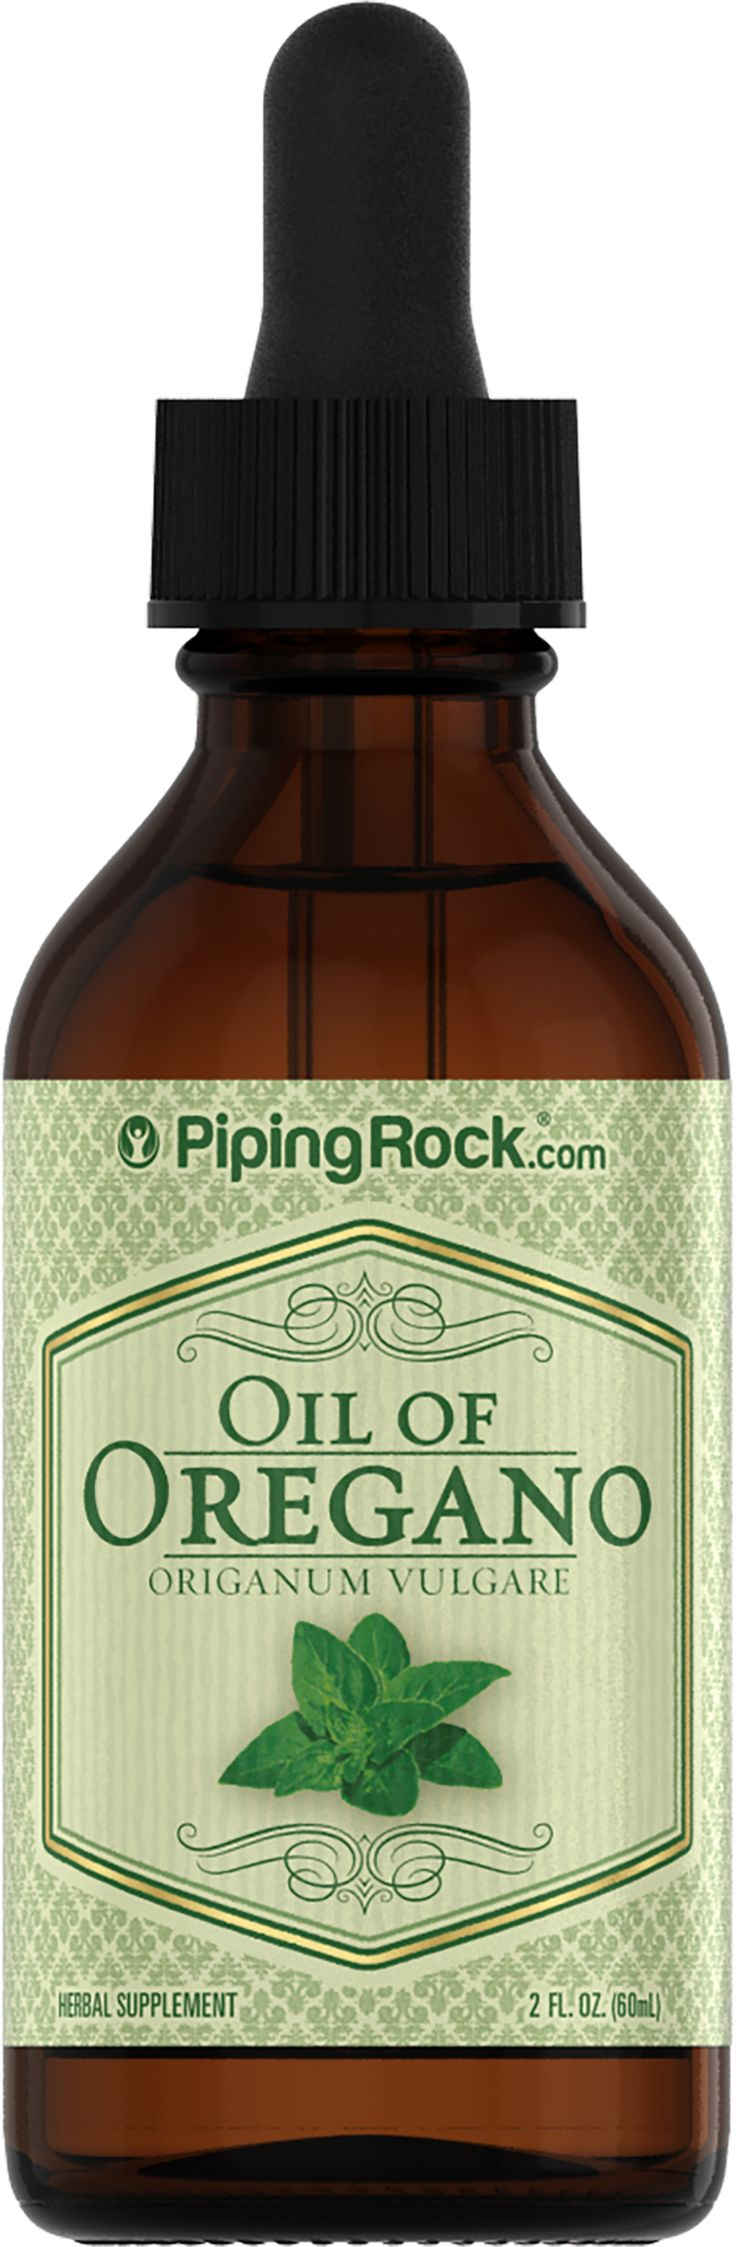 Buy Discounted Oil of Oregano Liquid Extract 1 Liquid Extract Vitamins & Supplements online at PipingRock.com